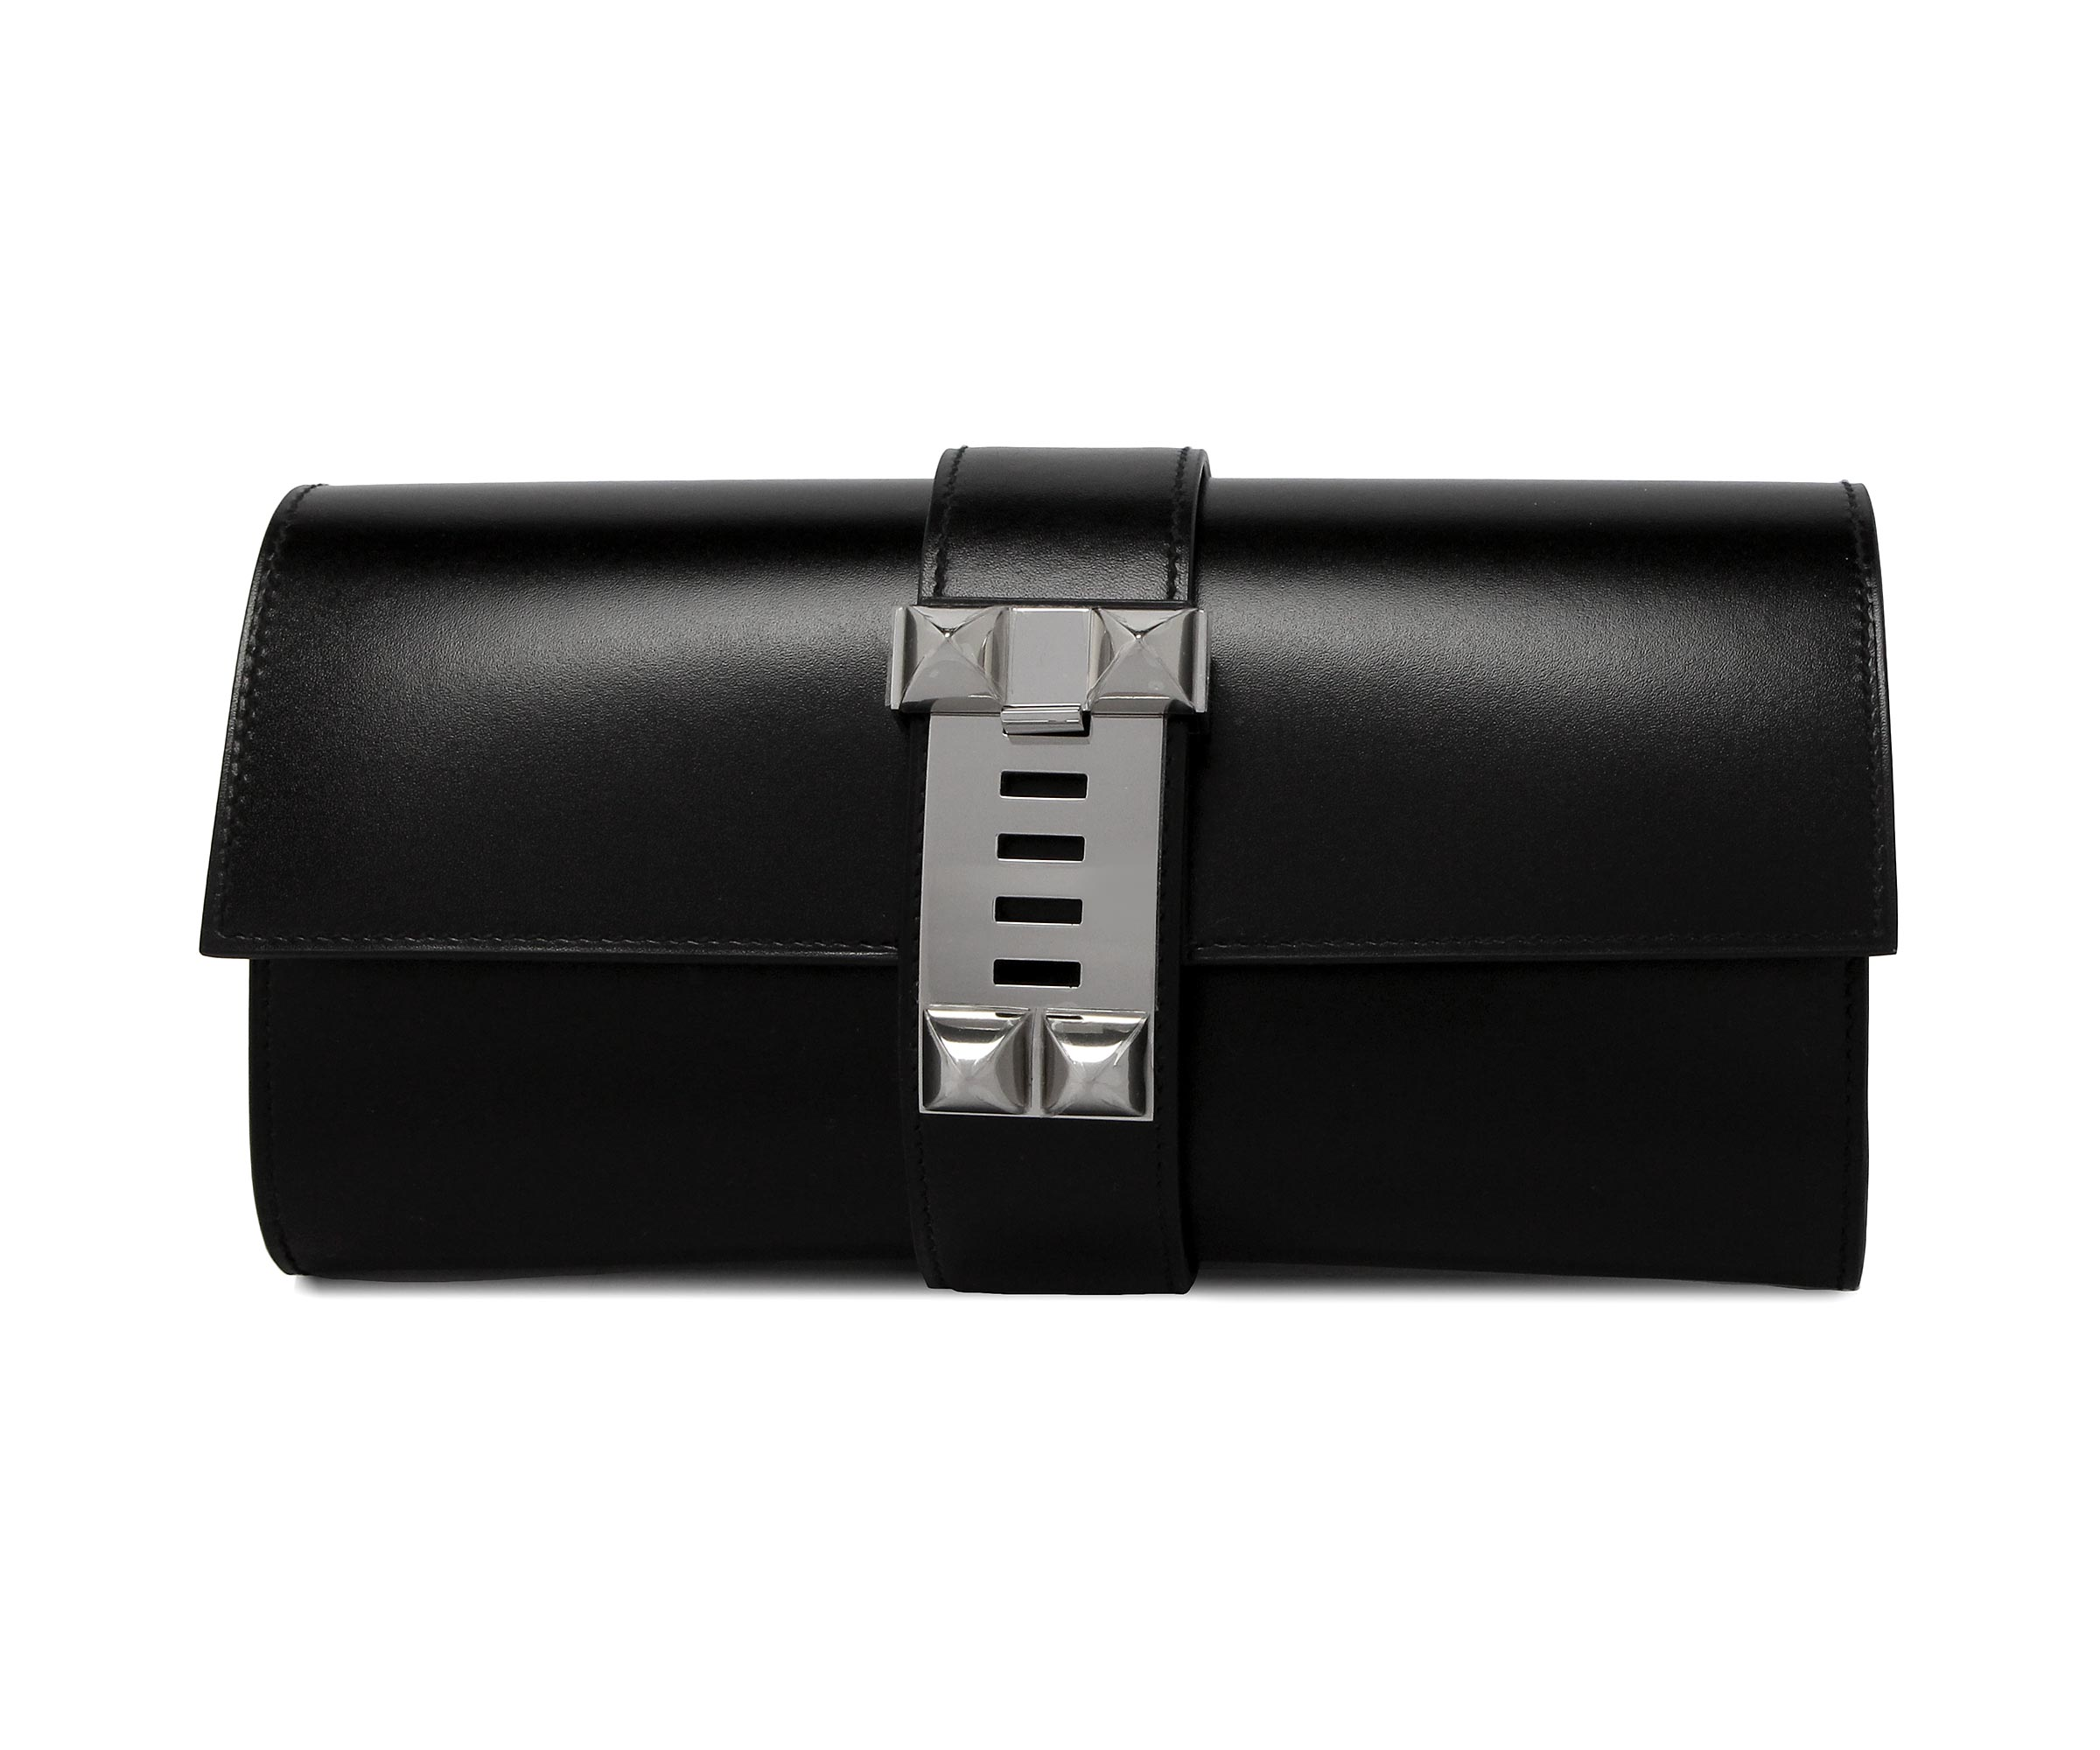 545fdb1297ca Hermes Medor Black Box with Palladium